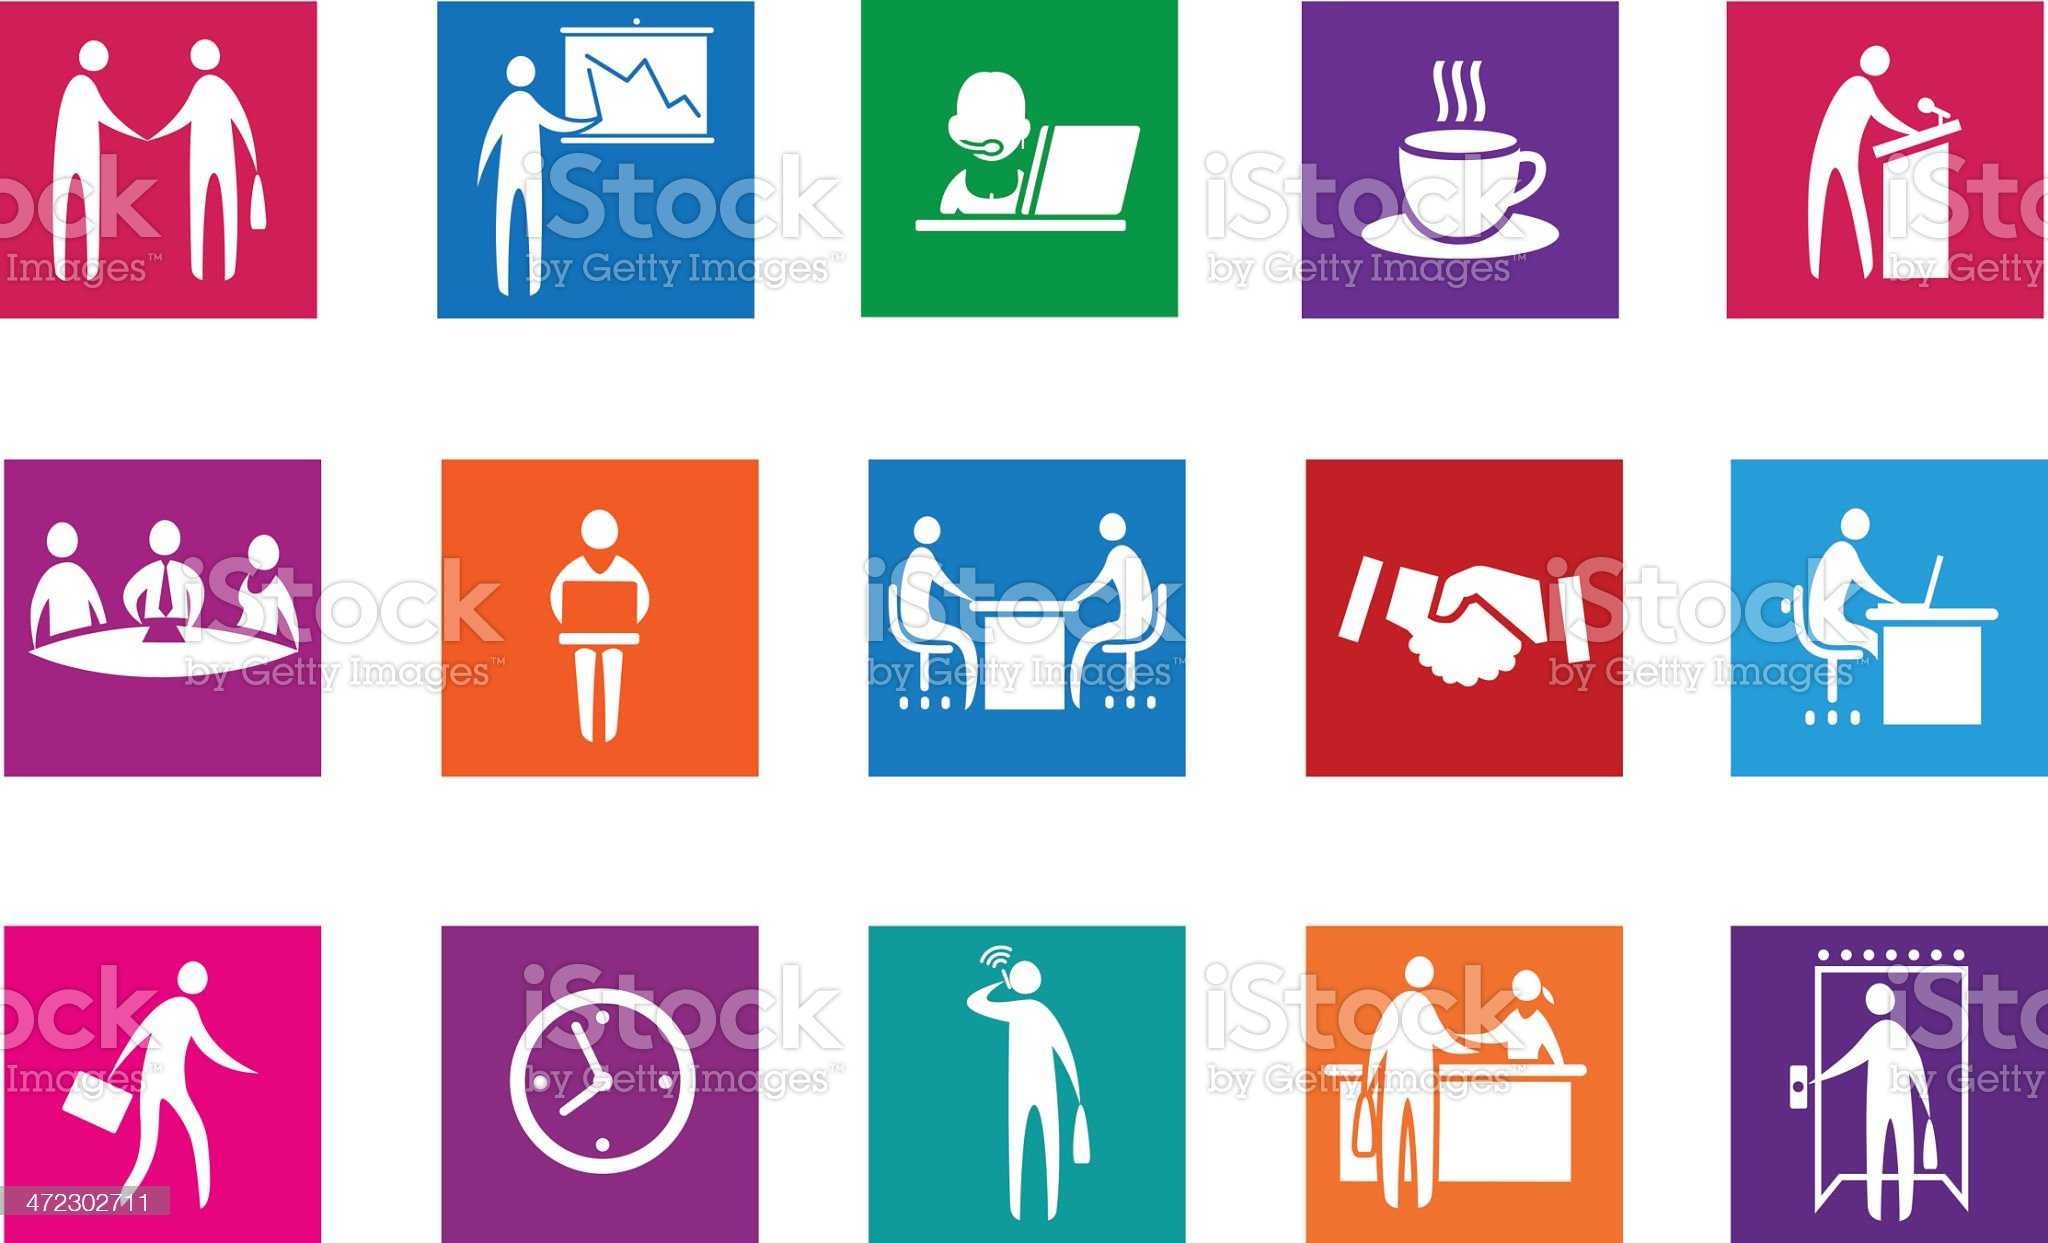 Set of office and business icons. royalty-free stock vector art